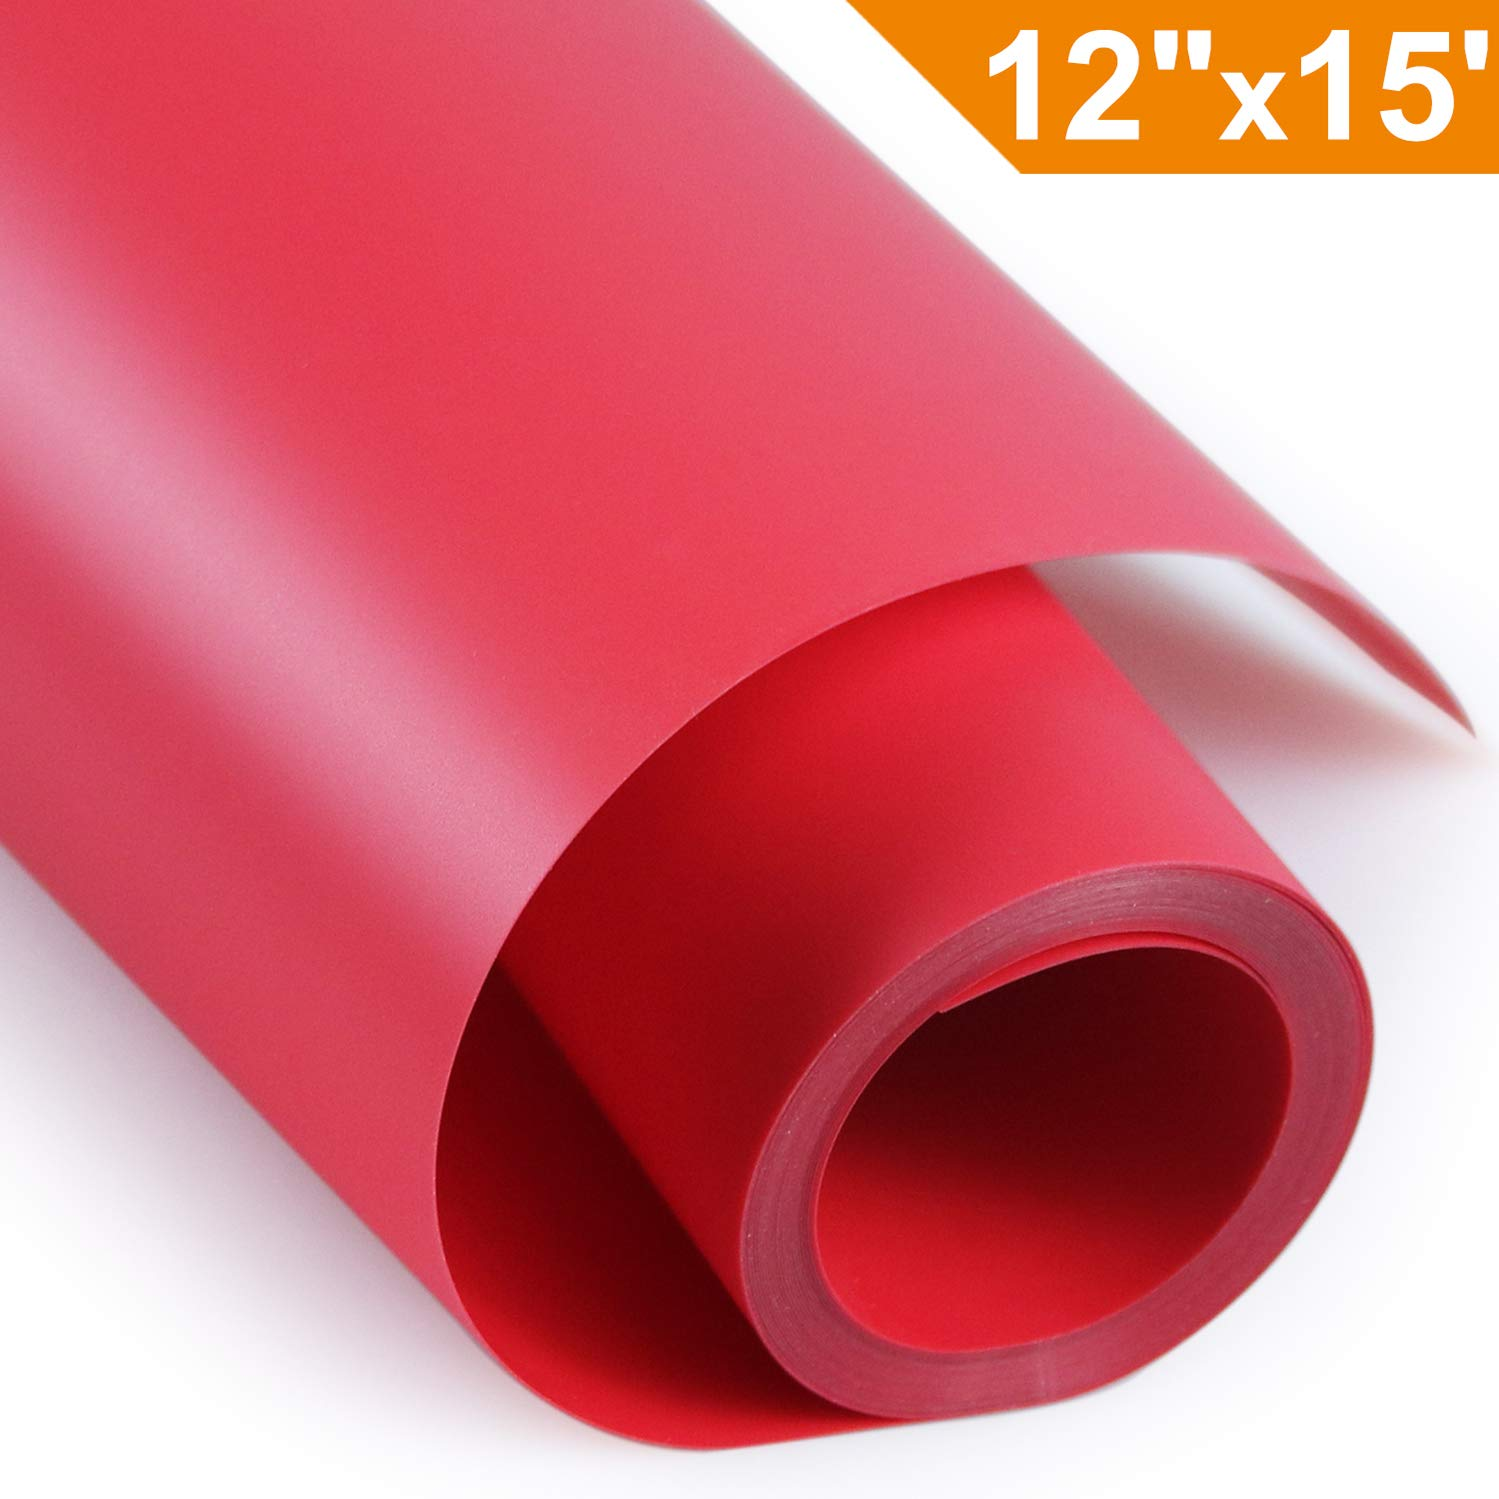 Heat Transfer Vinyl HTV for T-Shirts 12 Inches by 15 Feet Rolls(Black)